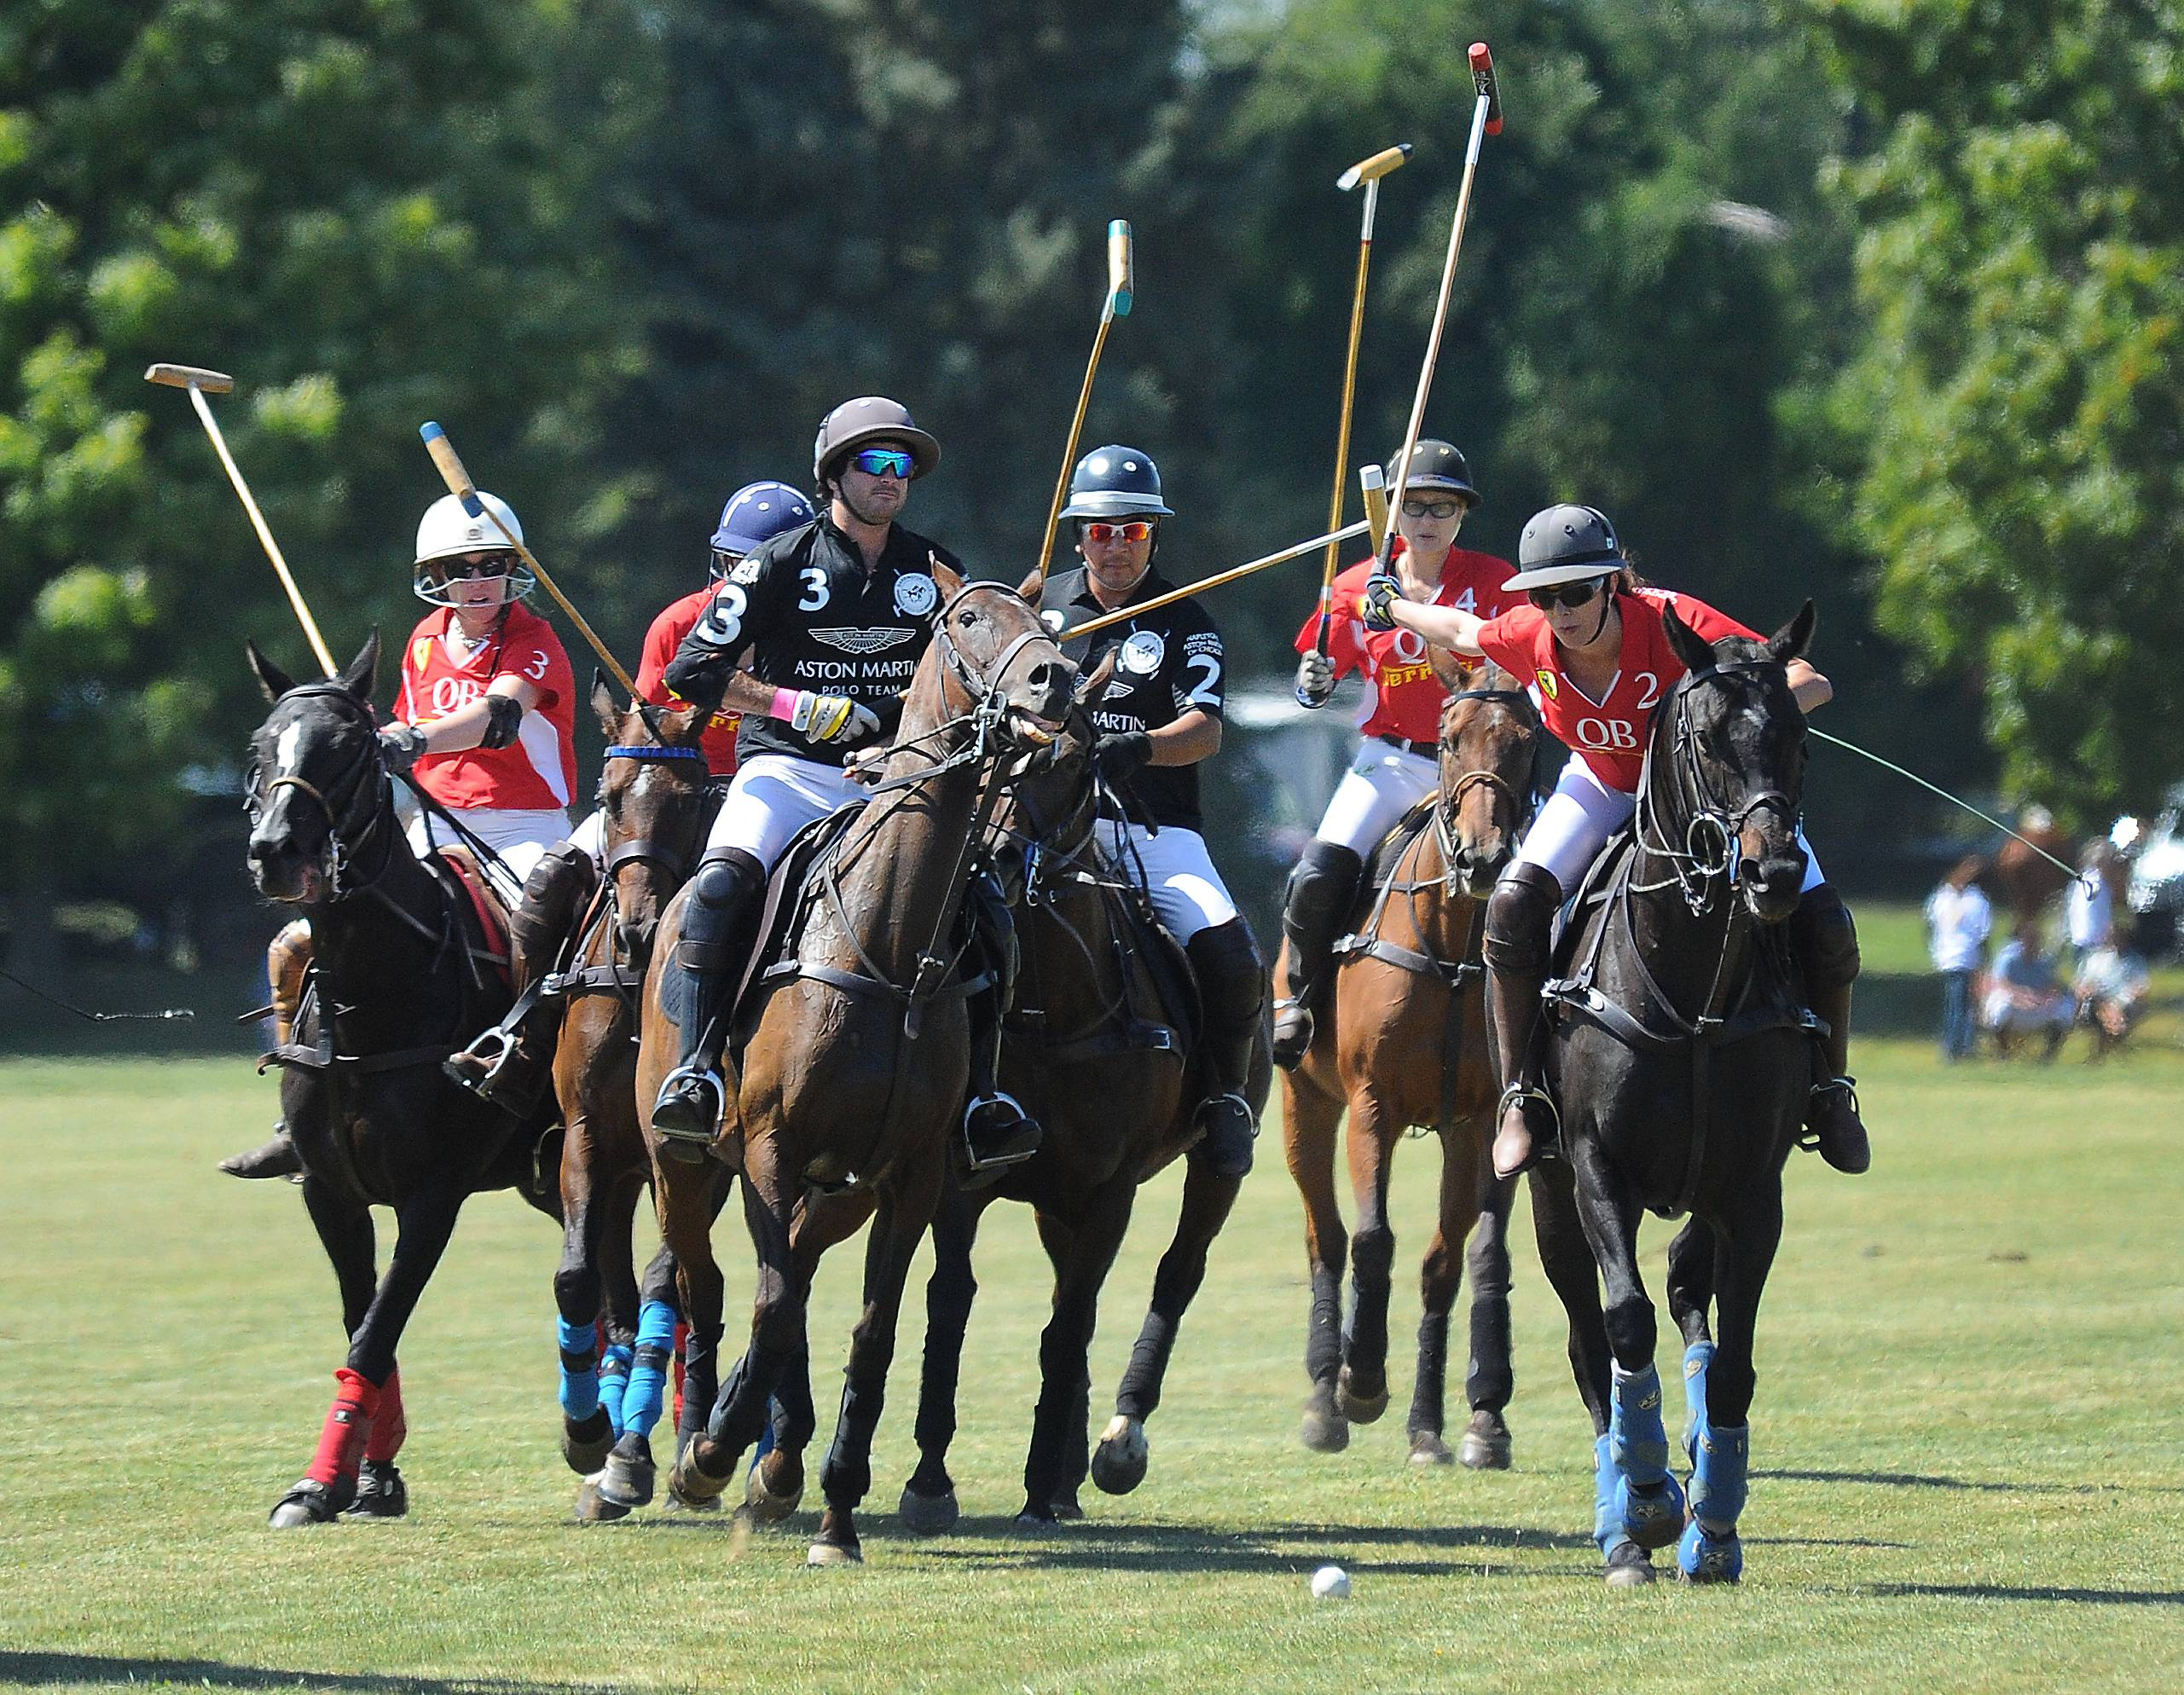 The Aston Martin Polo Team (men) and the Quintessential Barrington Polo Team (women) play at the 13th annual LeCompte/Kalaway Trailowners Cup Polo in Barrington Hills.